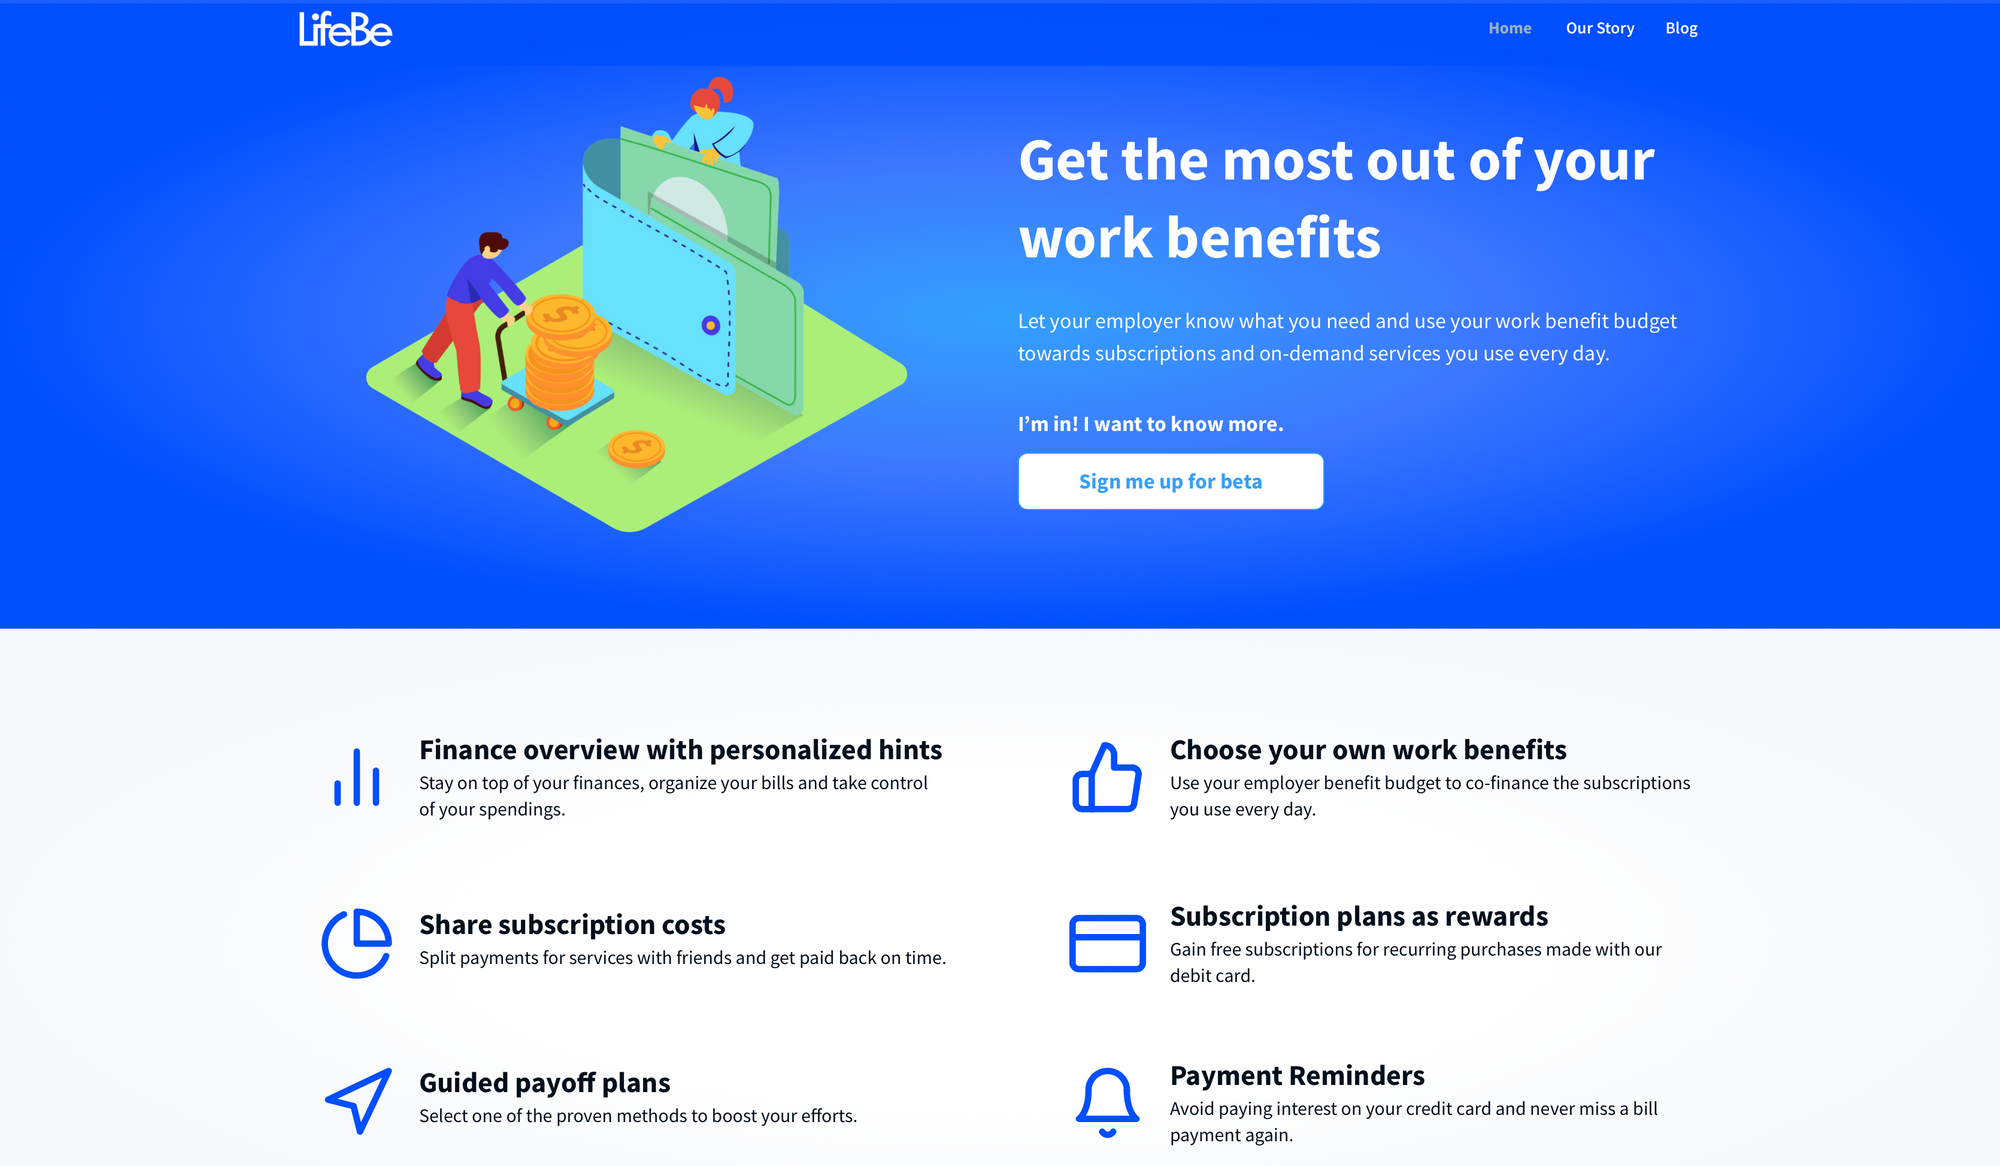 LifeBe's features